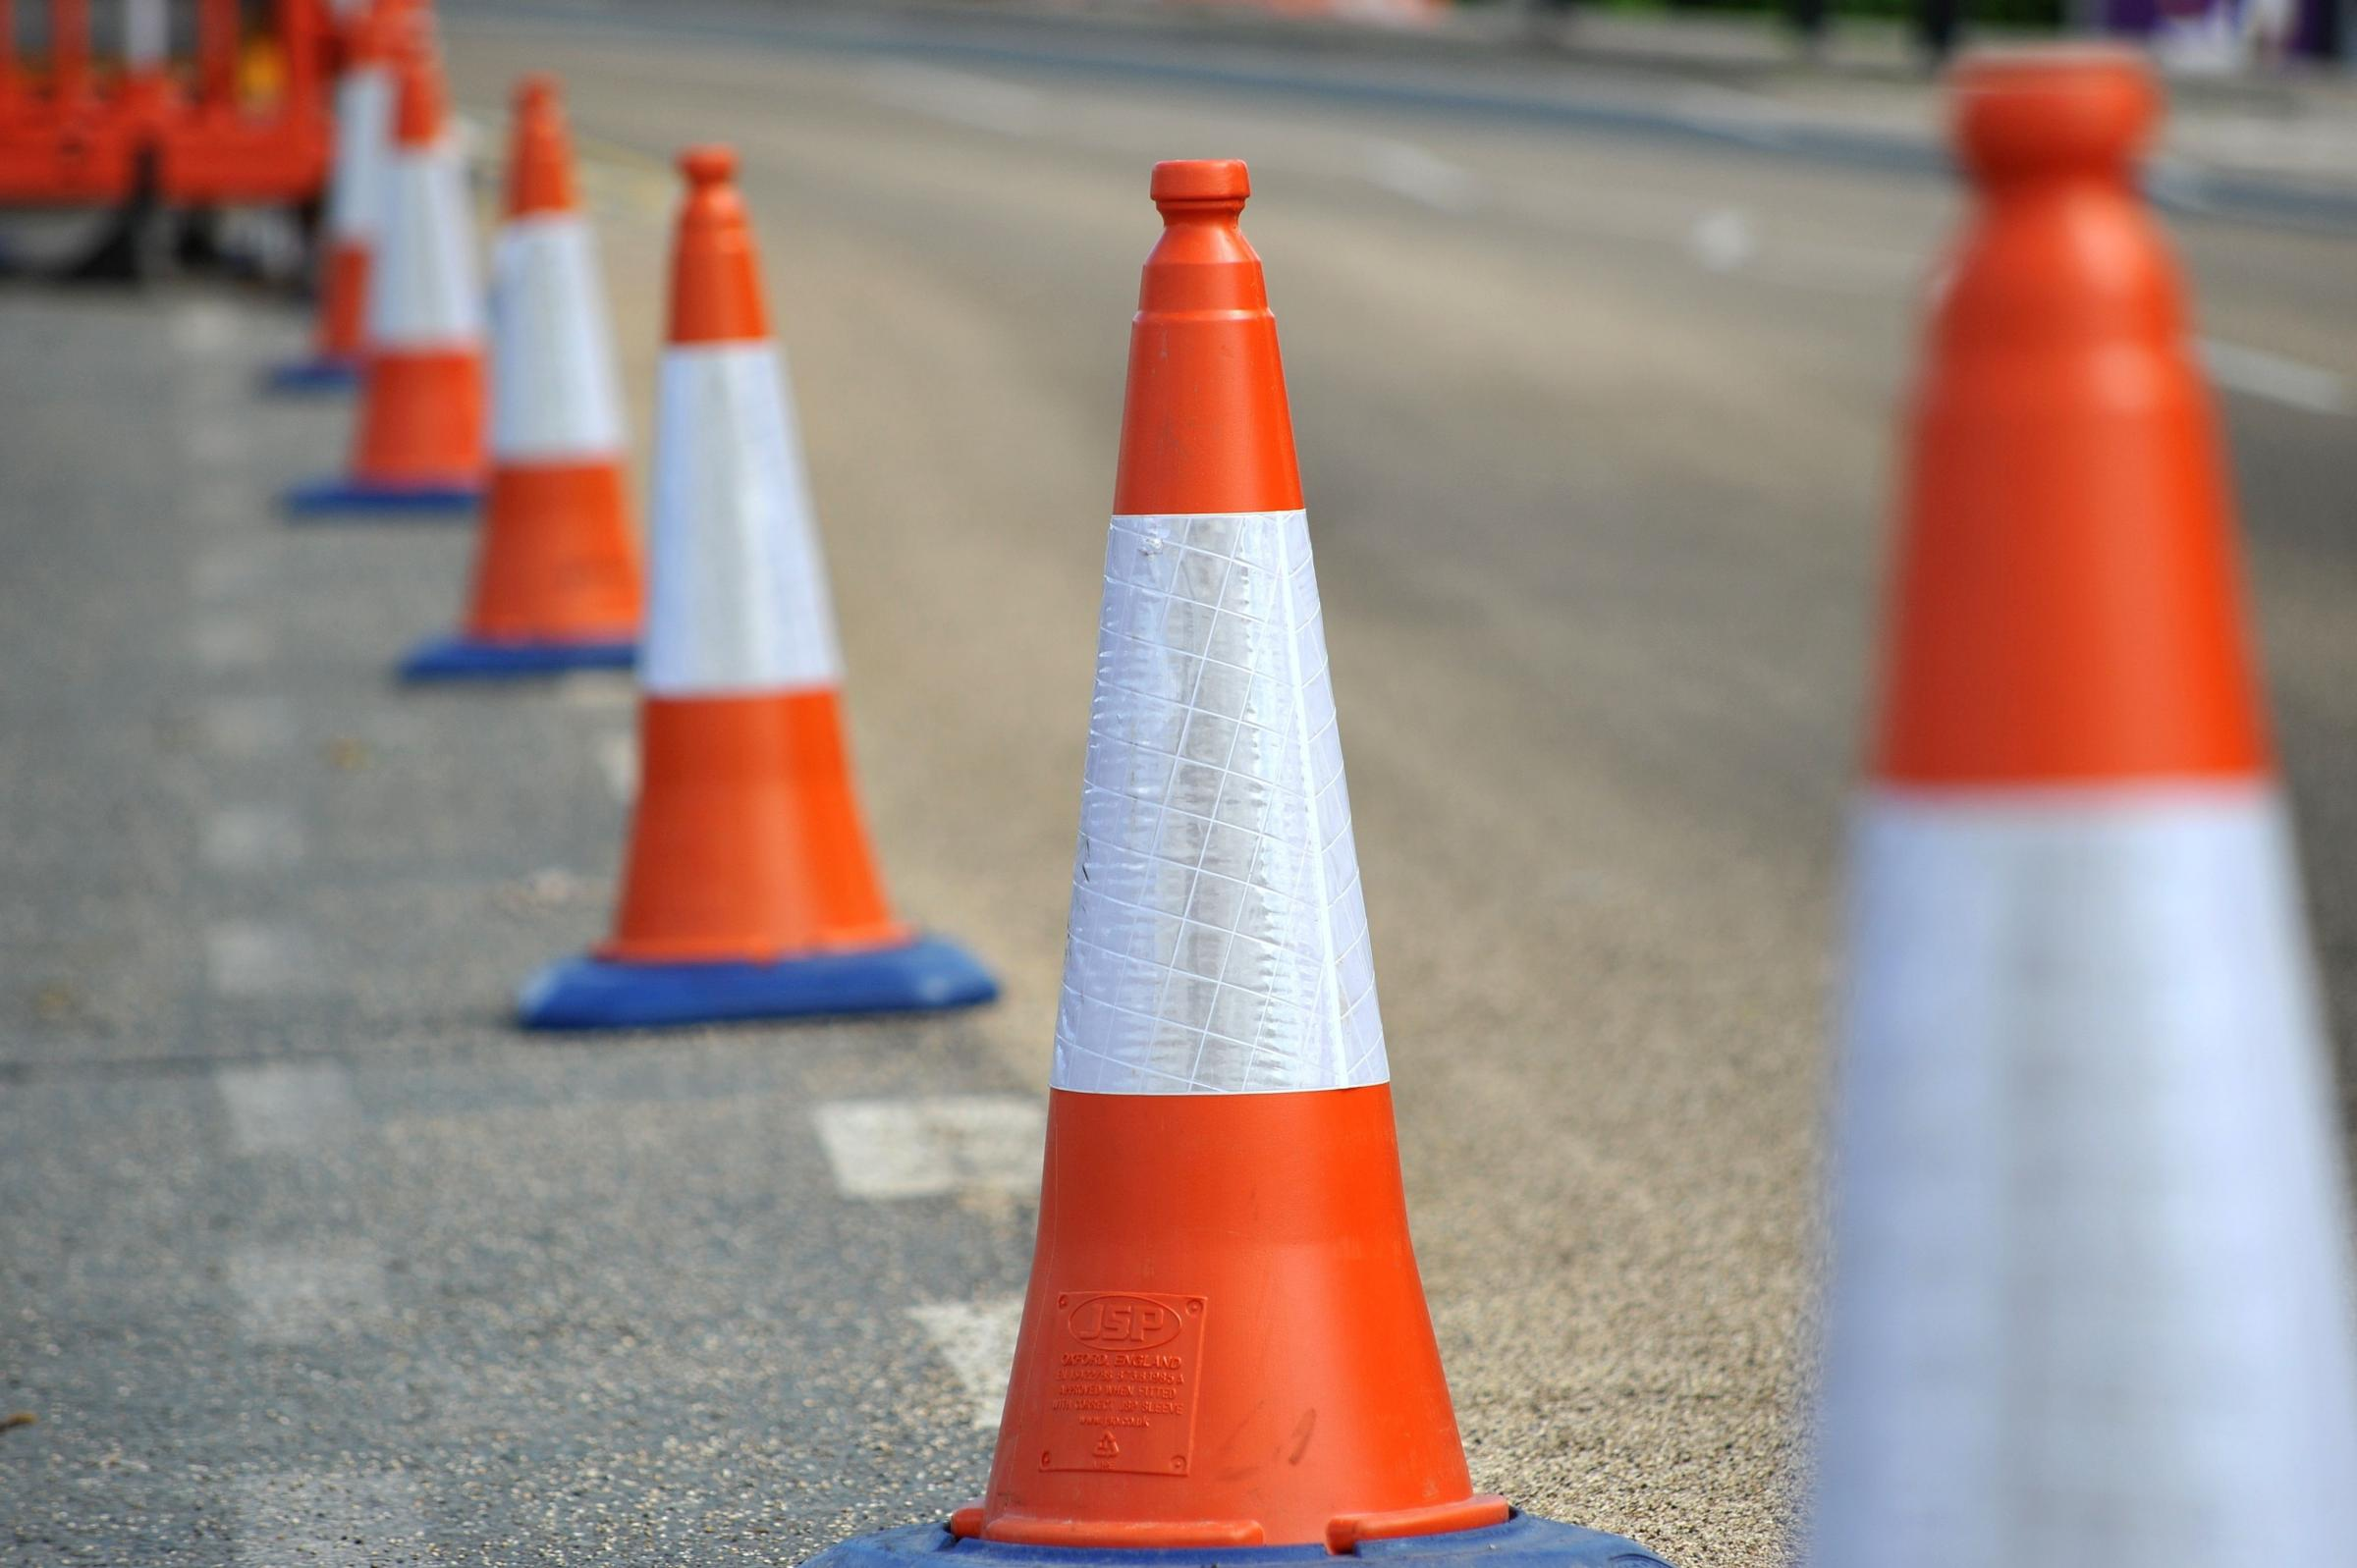 Stock photograph of traffic cones. Pic Jonathan Barry 14.5.14  201459860.